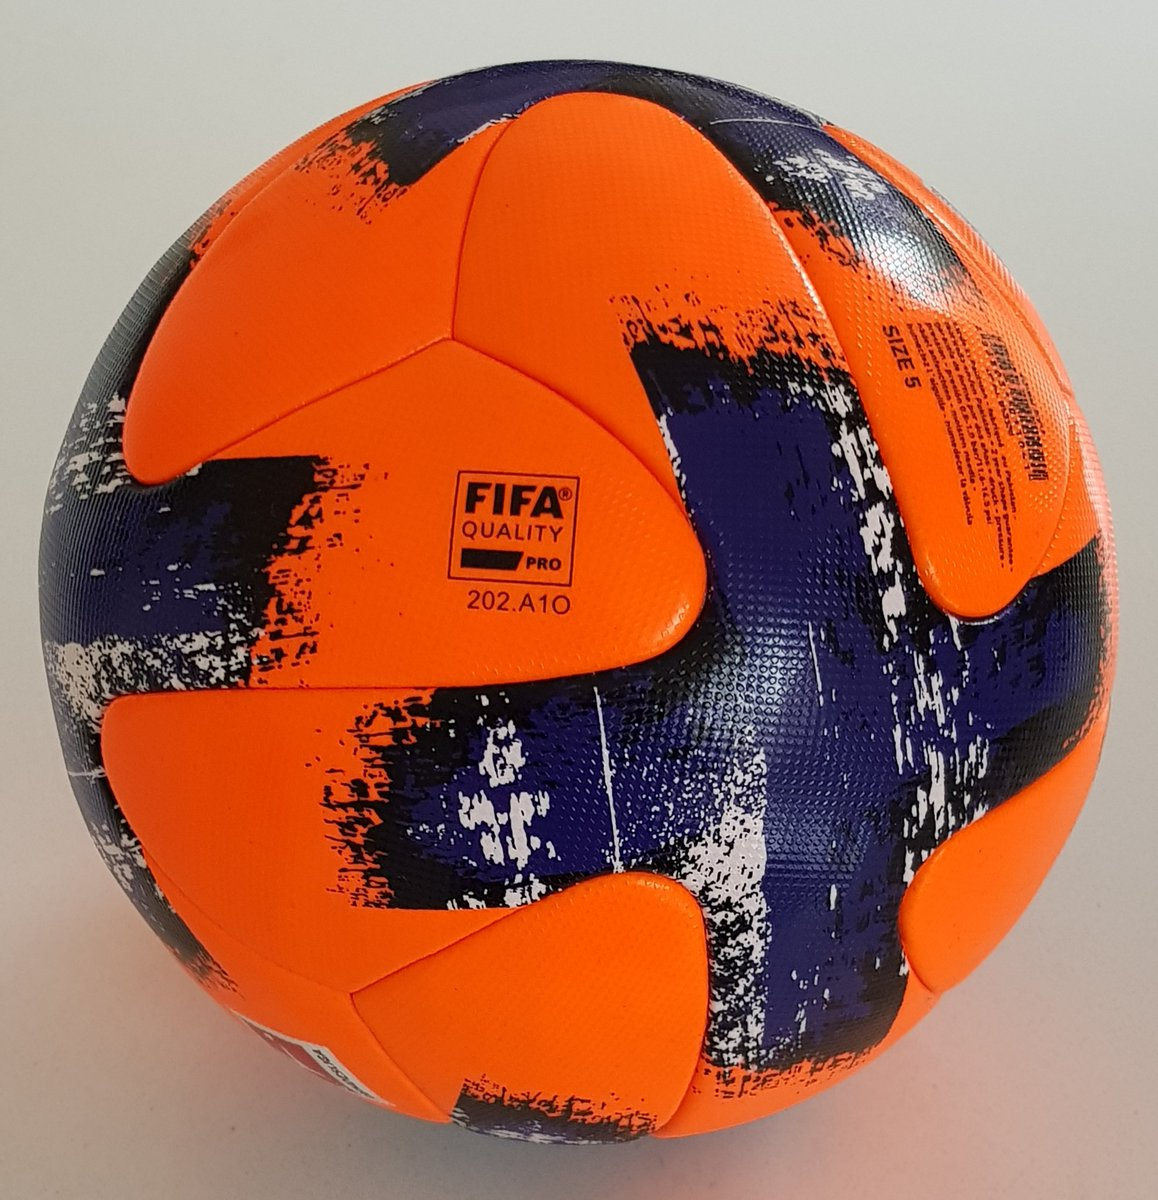 NEW ADIDAS TORFABRIK OFFICIAL MATCH SOCCER BALL A Team